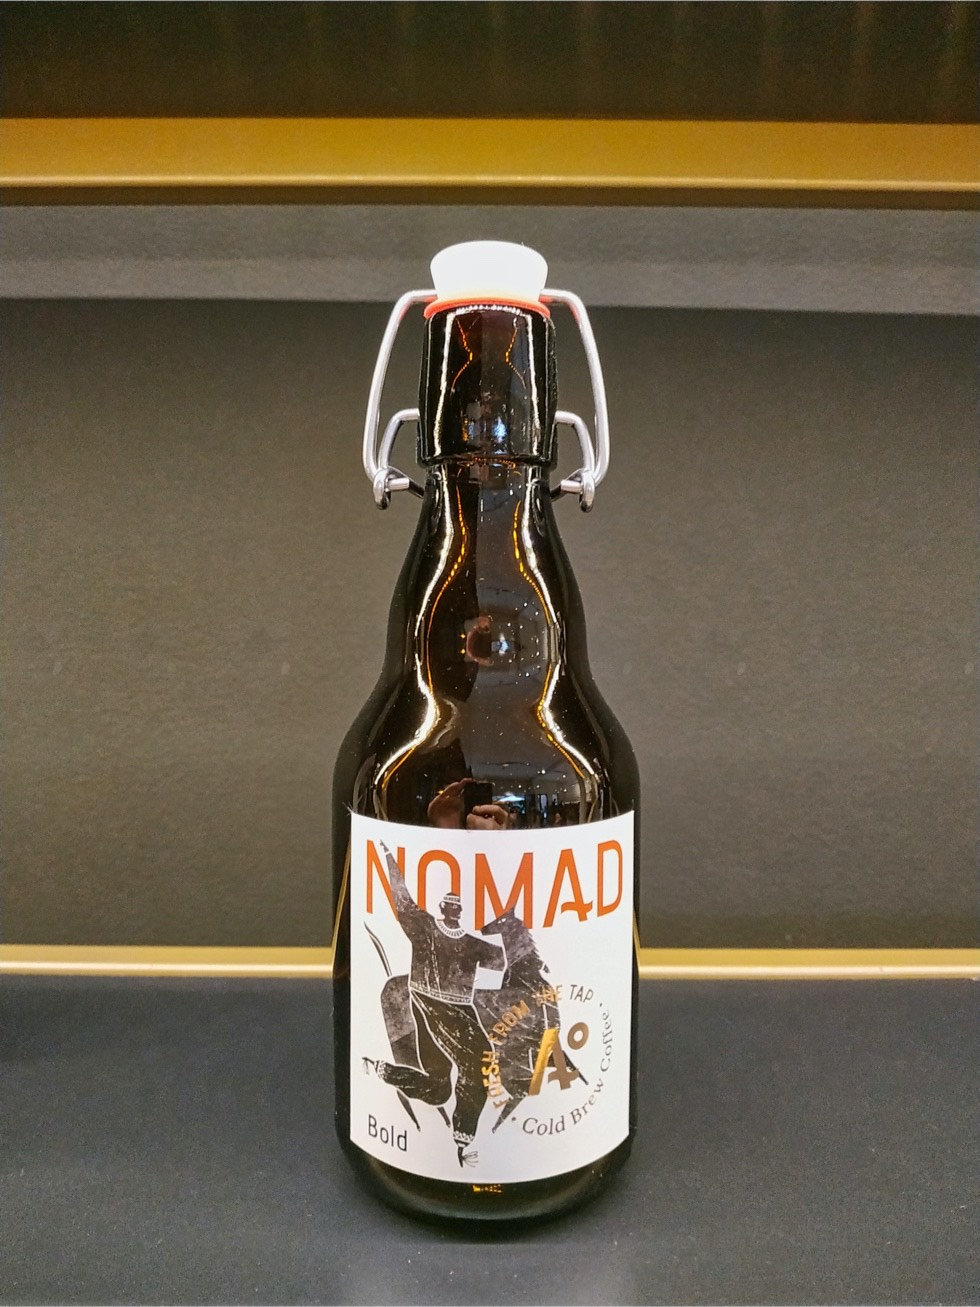 Nomad Cold Brew Coffee Bottle